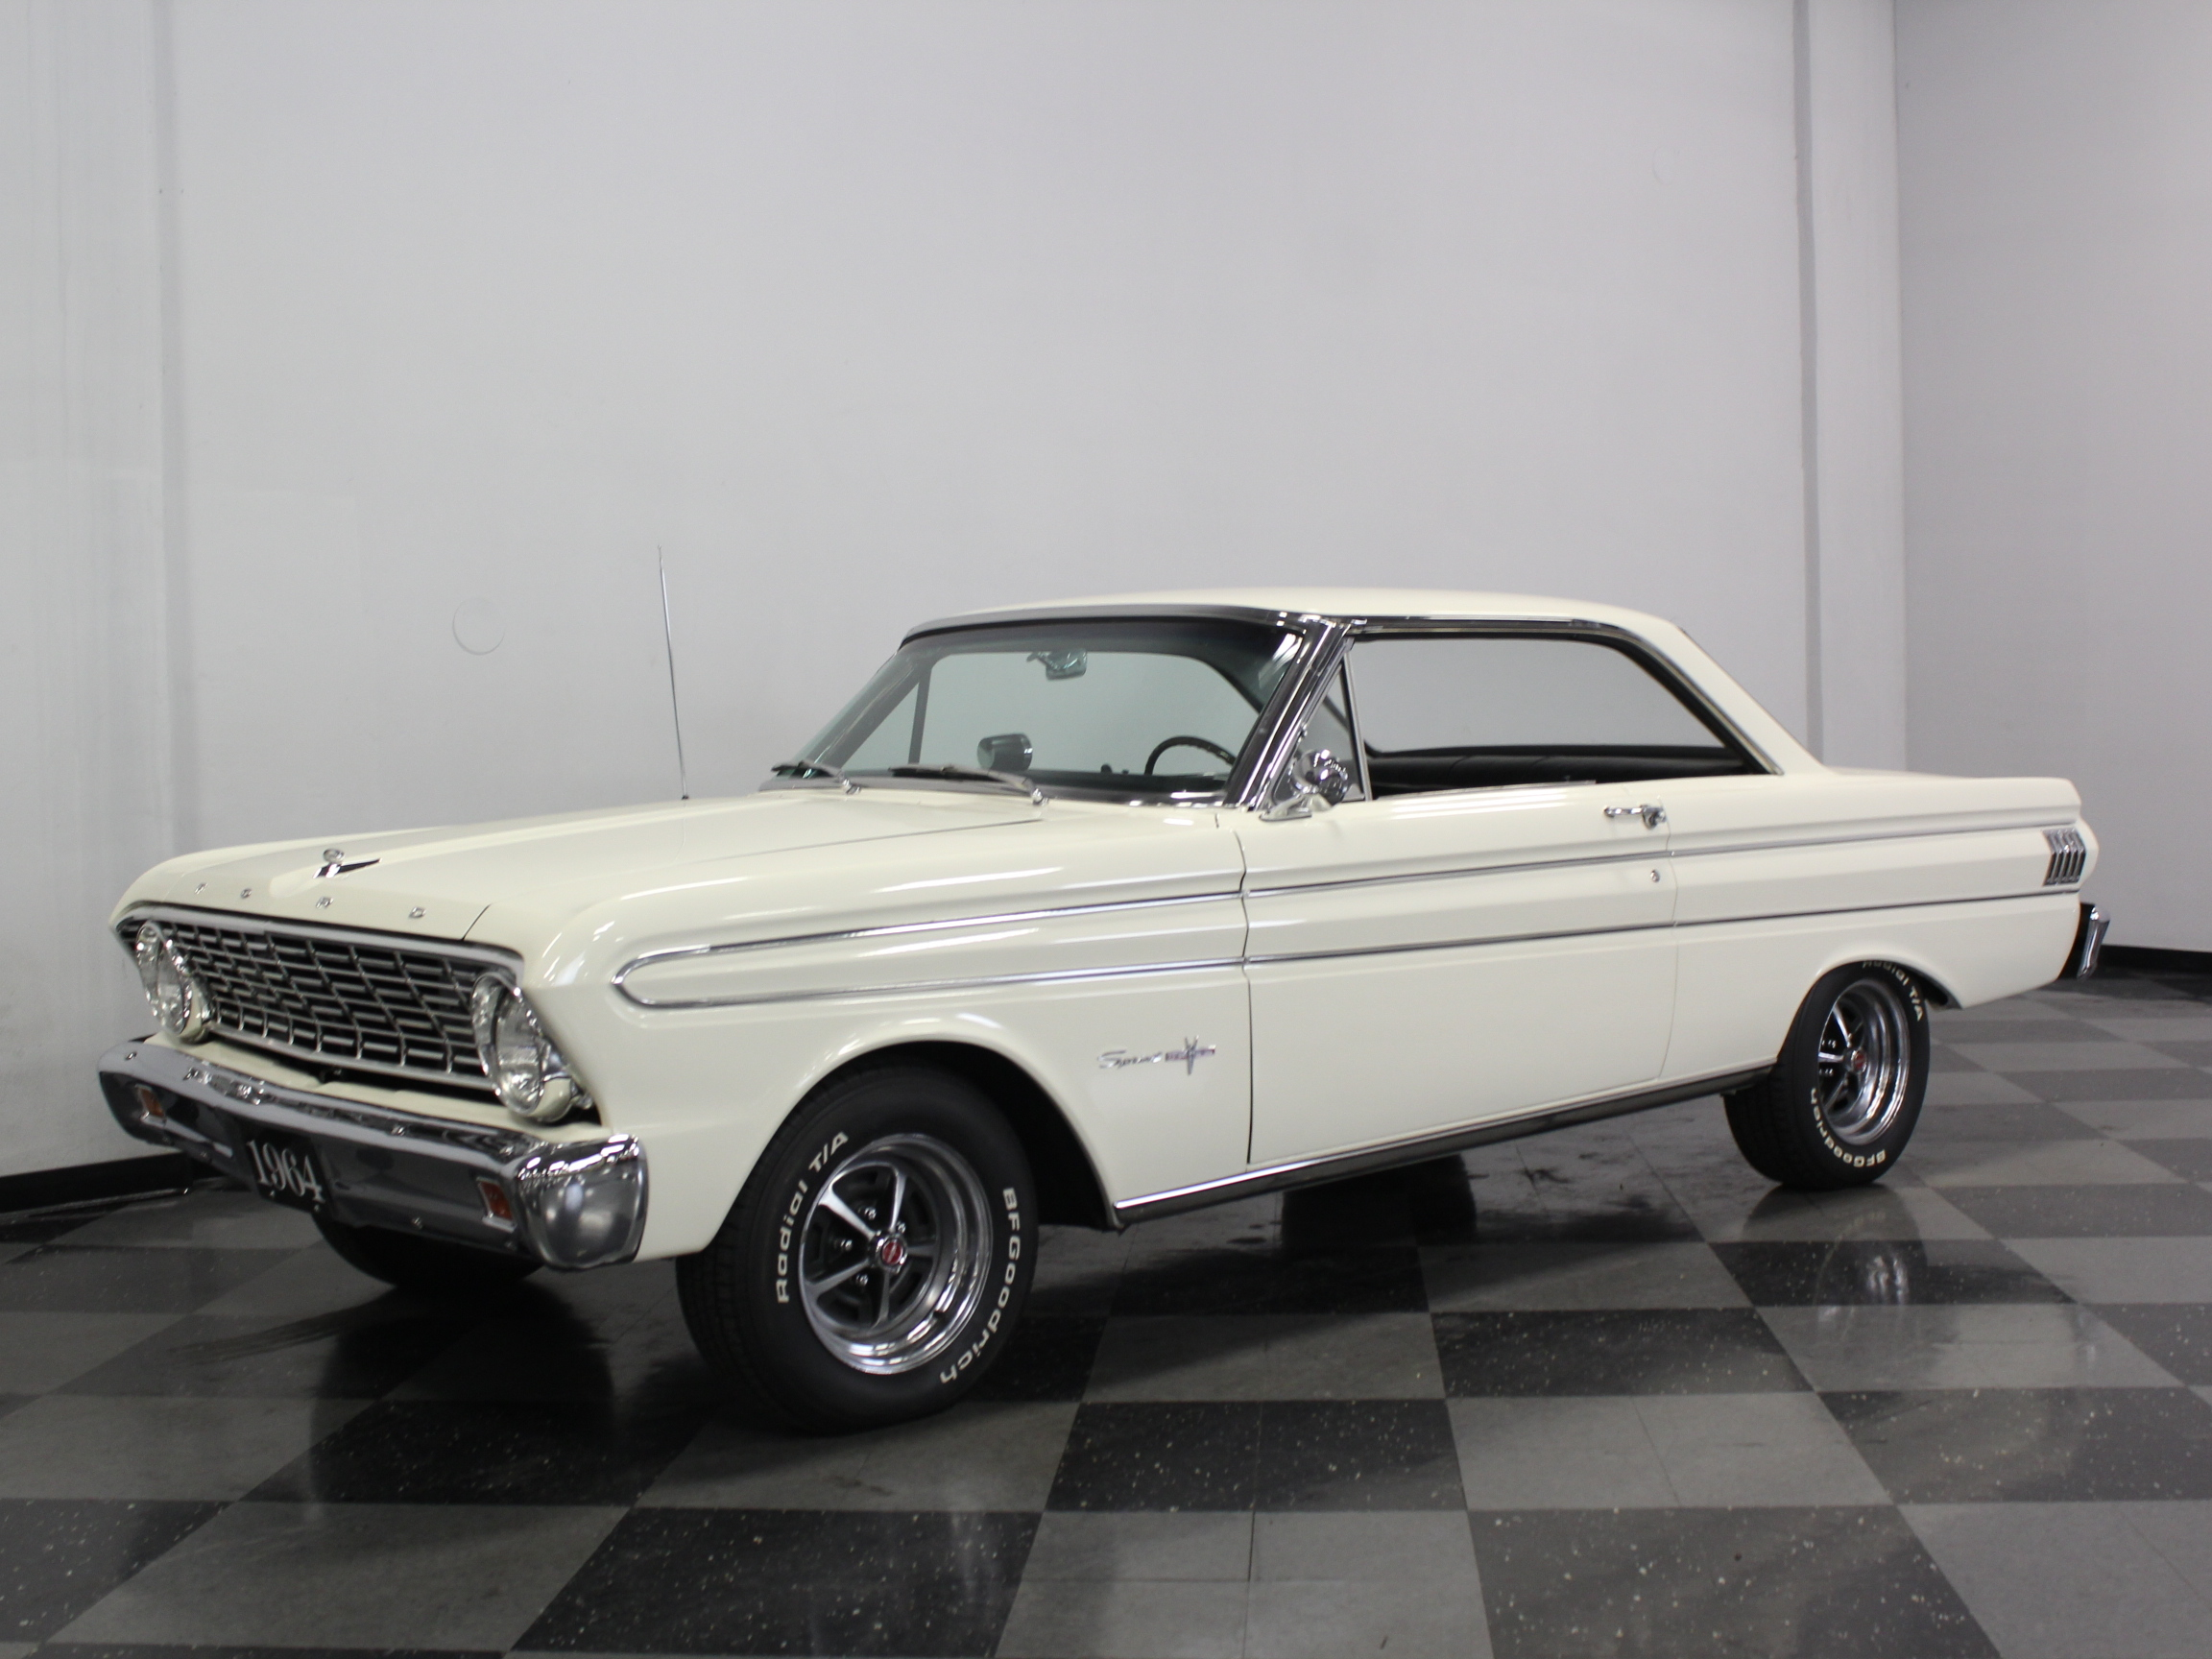 1964 ford falcon my classic garage. Black Bedroom Furniture Sets. Home Design Ideas